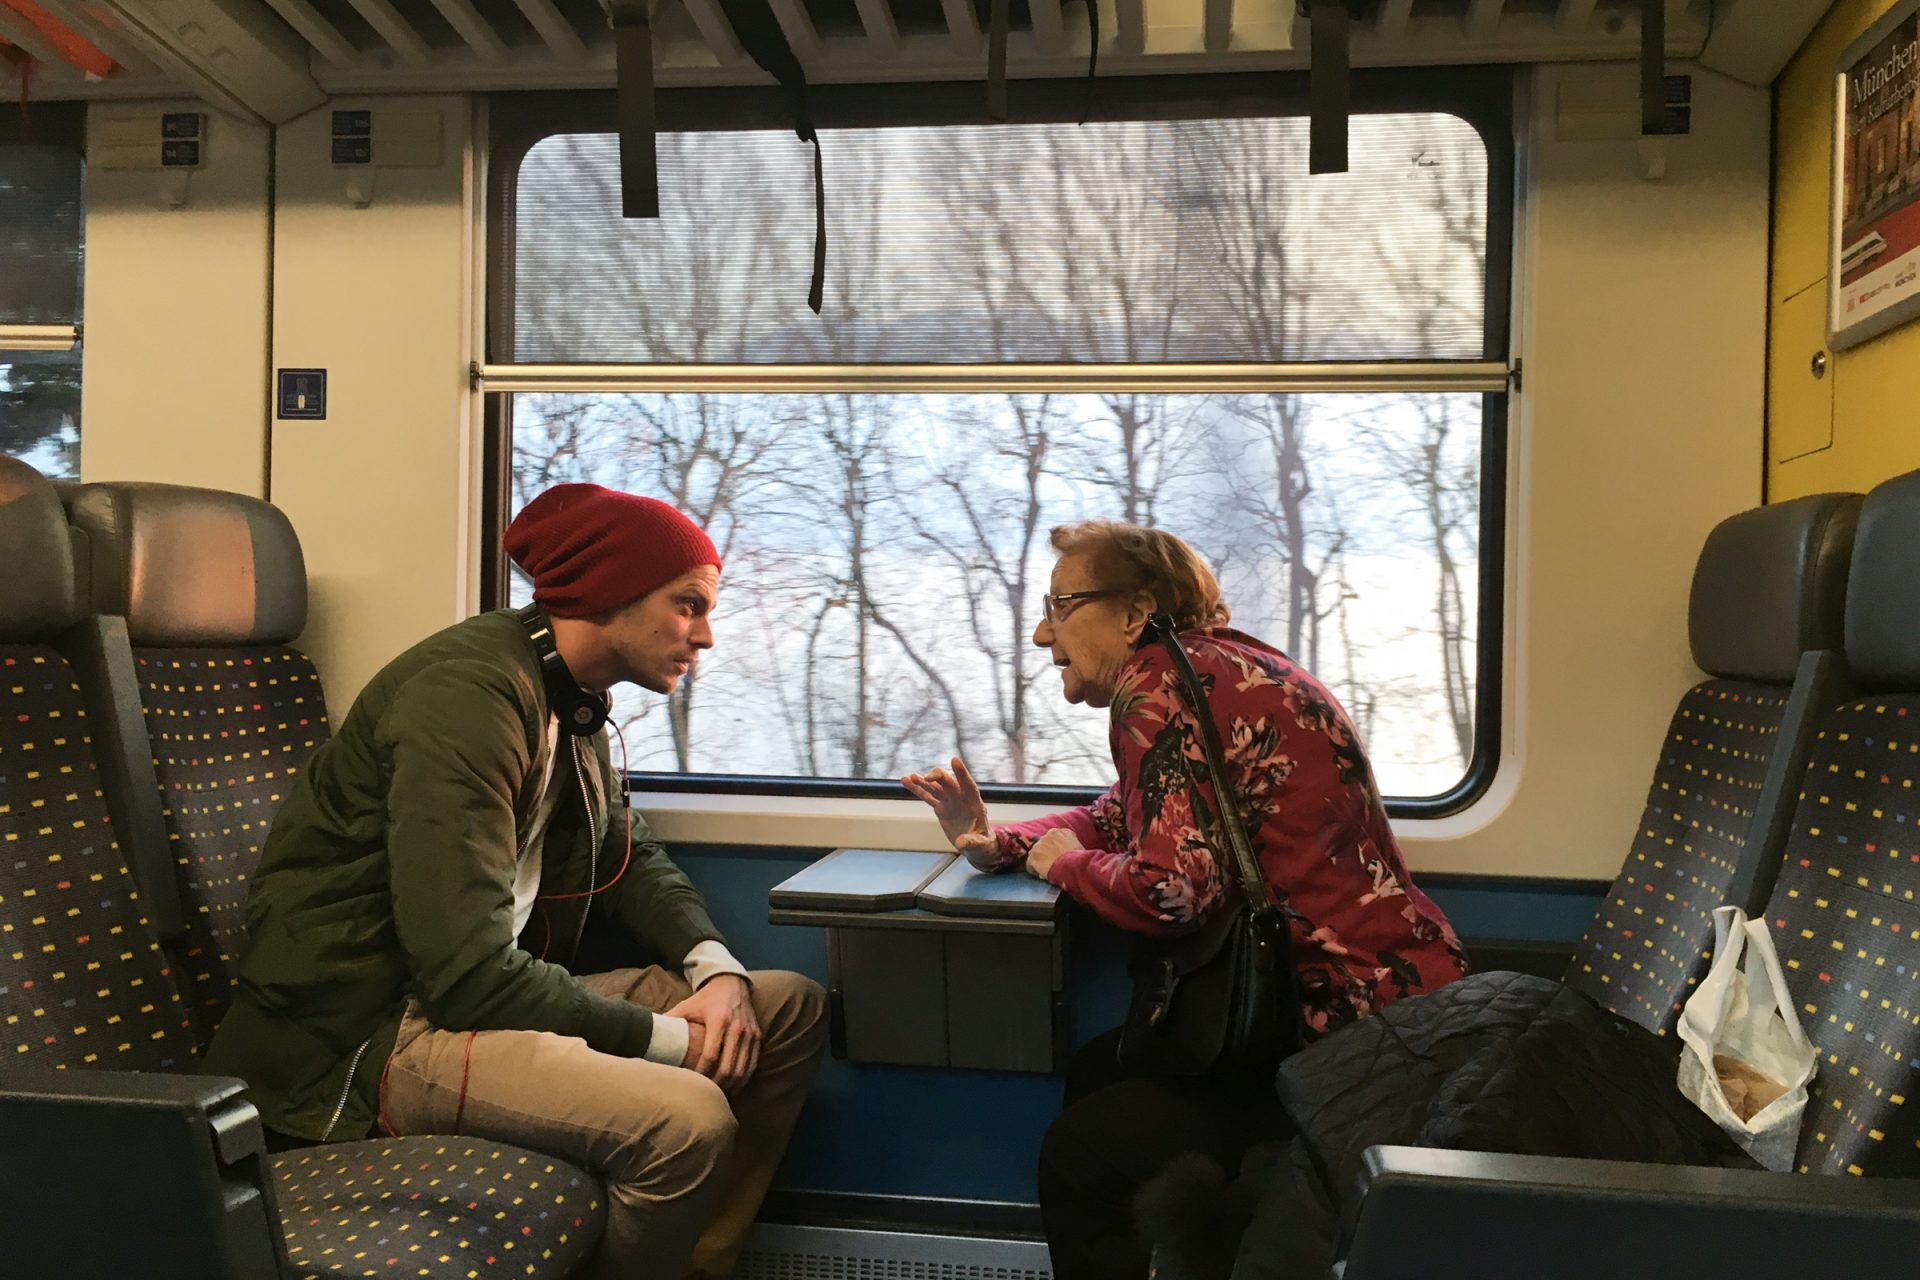 Young Man & Old Woman Talking on Train